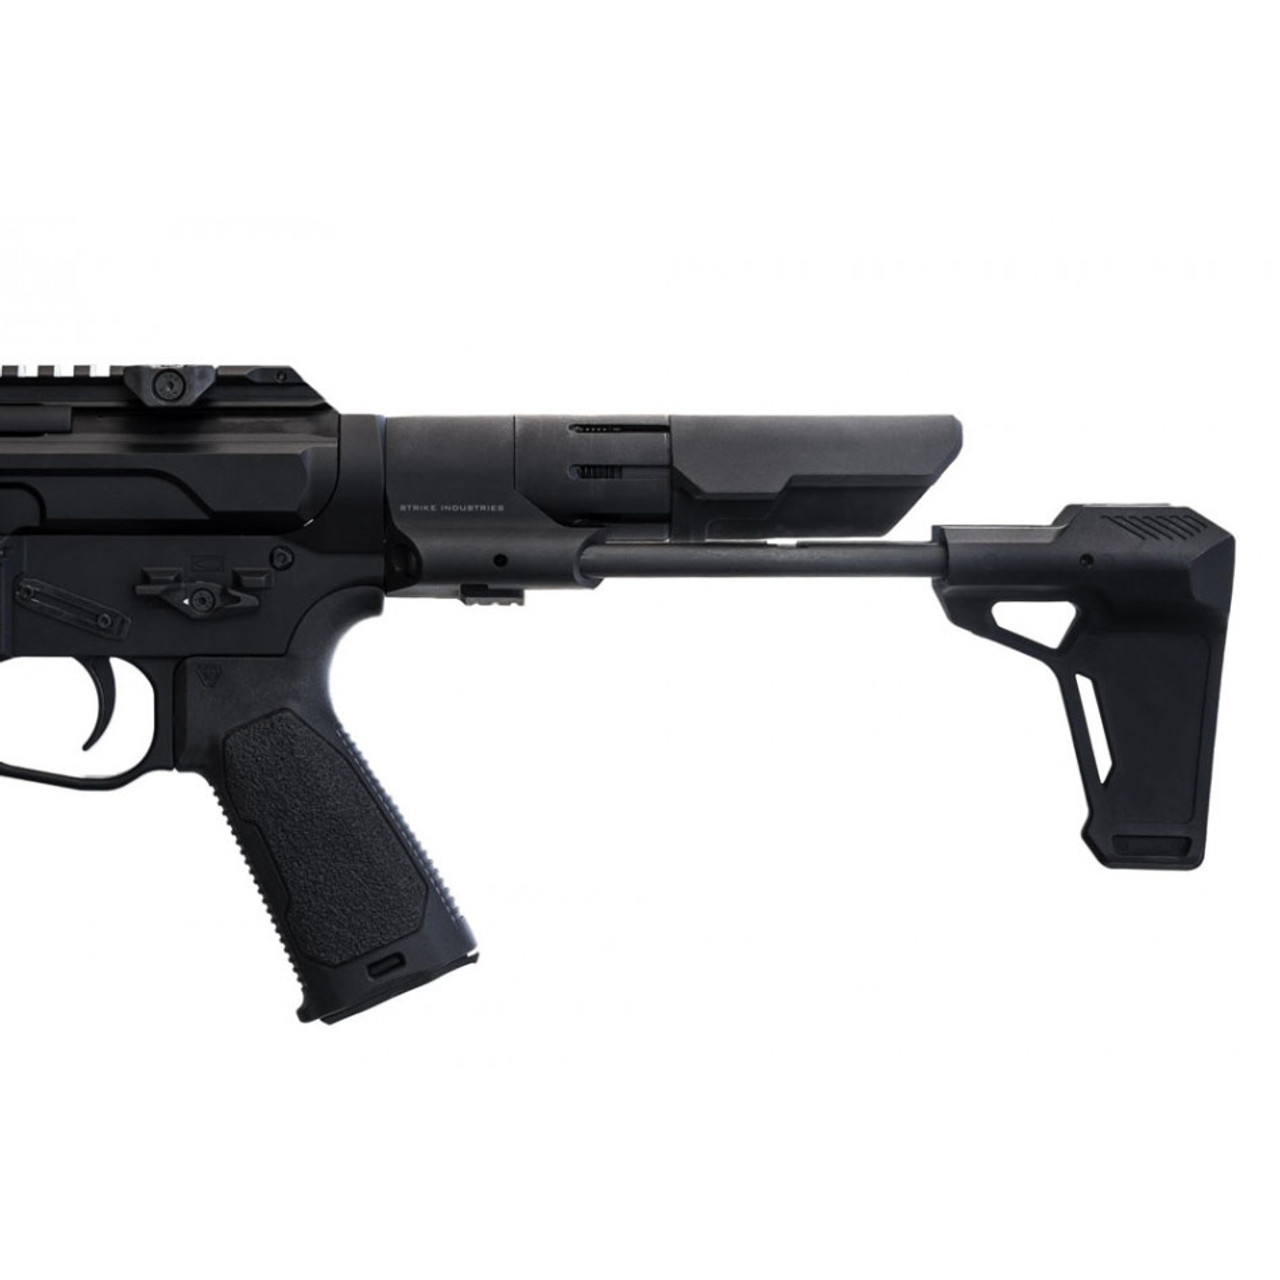 Strike Industries Viper PDW Stabilizer for AR Pistol extended